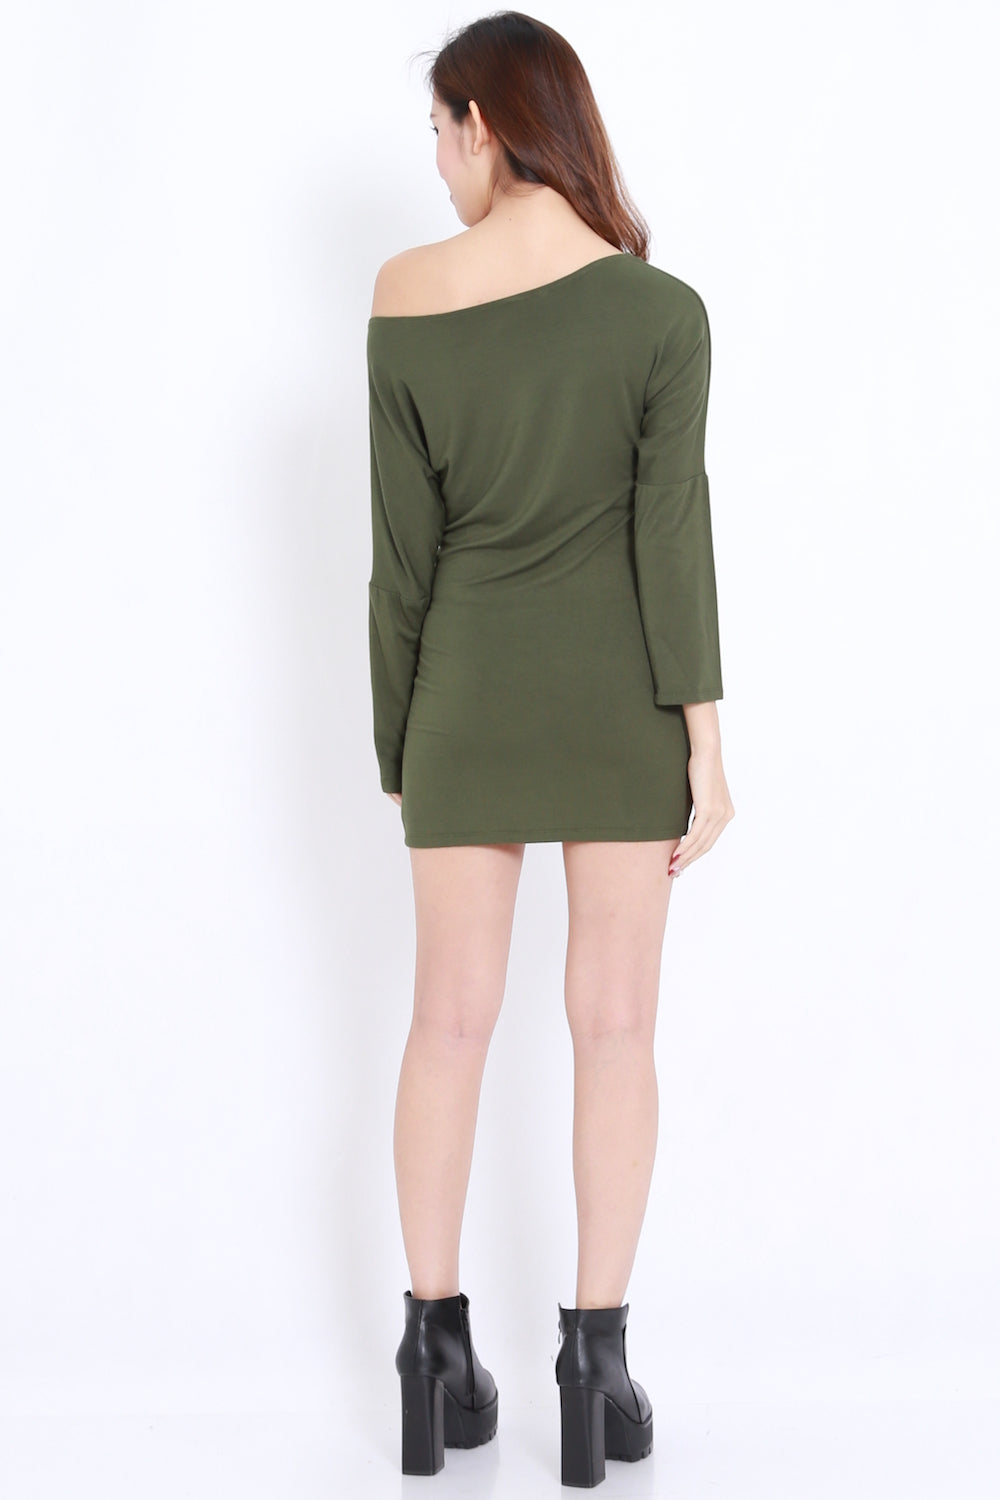 Off Shoulder Bandage Dress (Olive)